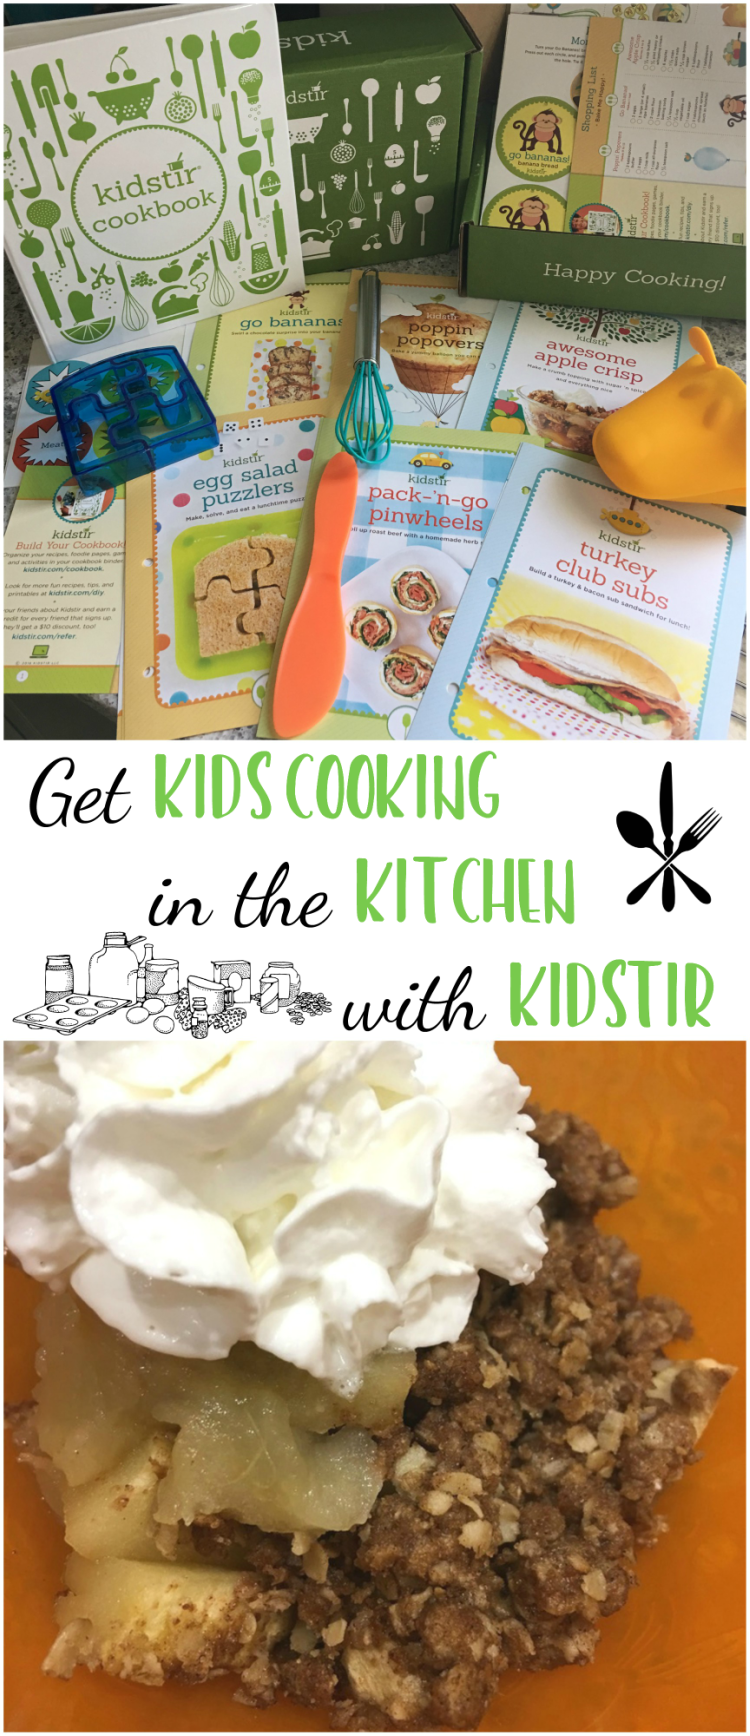 Get Kids Cooking in the Kitchen with Kidstir | #Kidstir #kids #cooking #kitchen #subscription